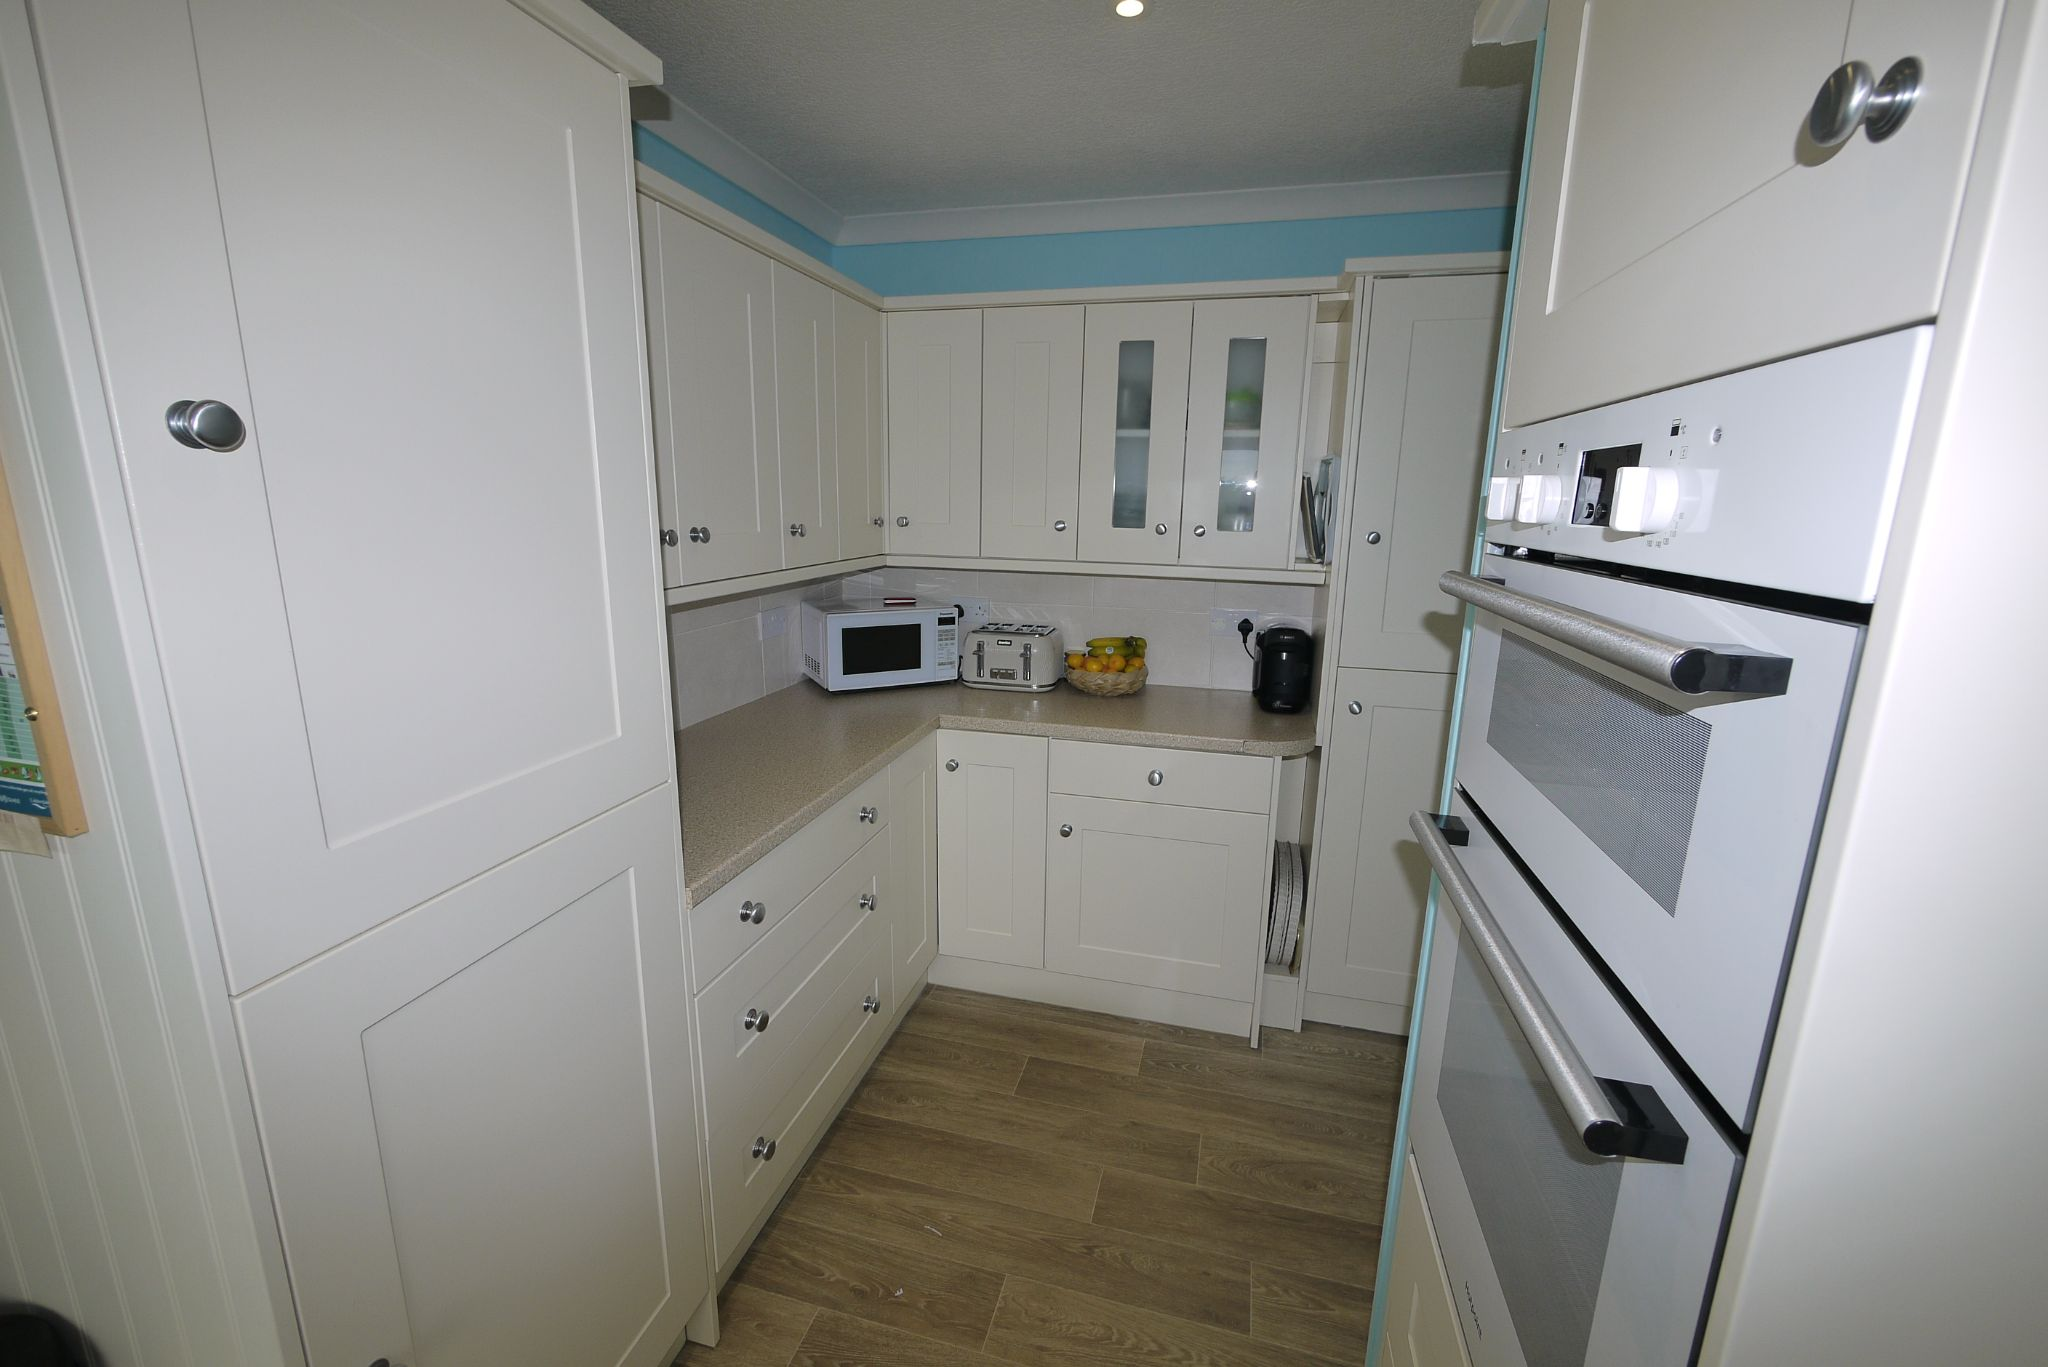 2 bedroom detached bungalow SSTC in Brighouse - Kitchen 3.